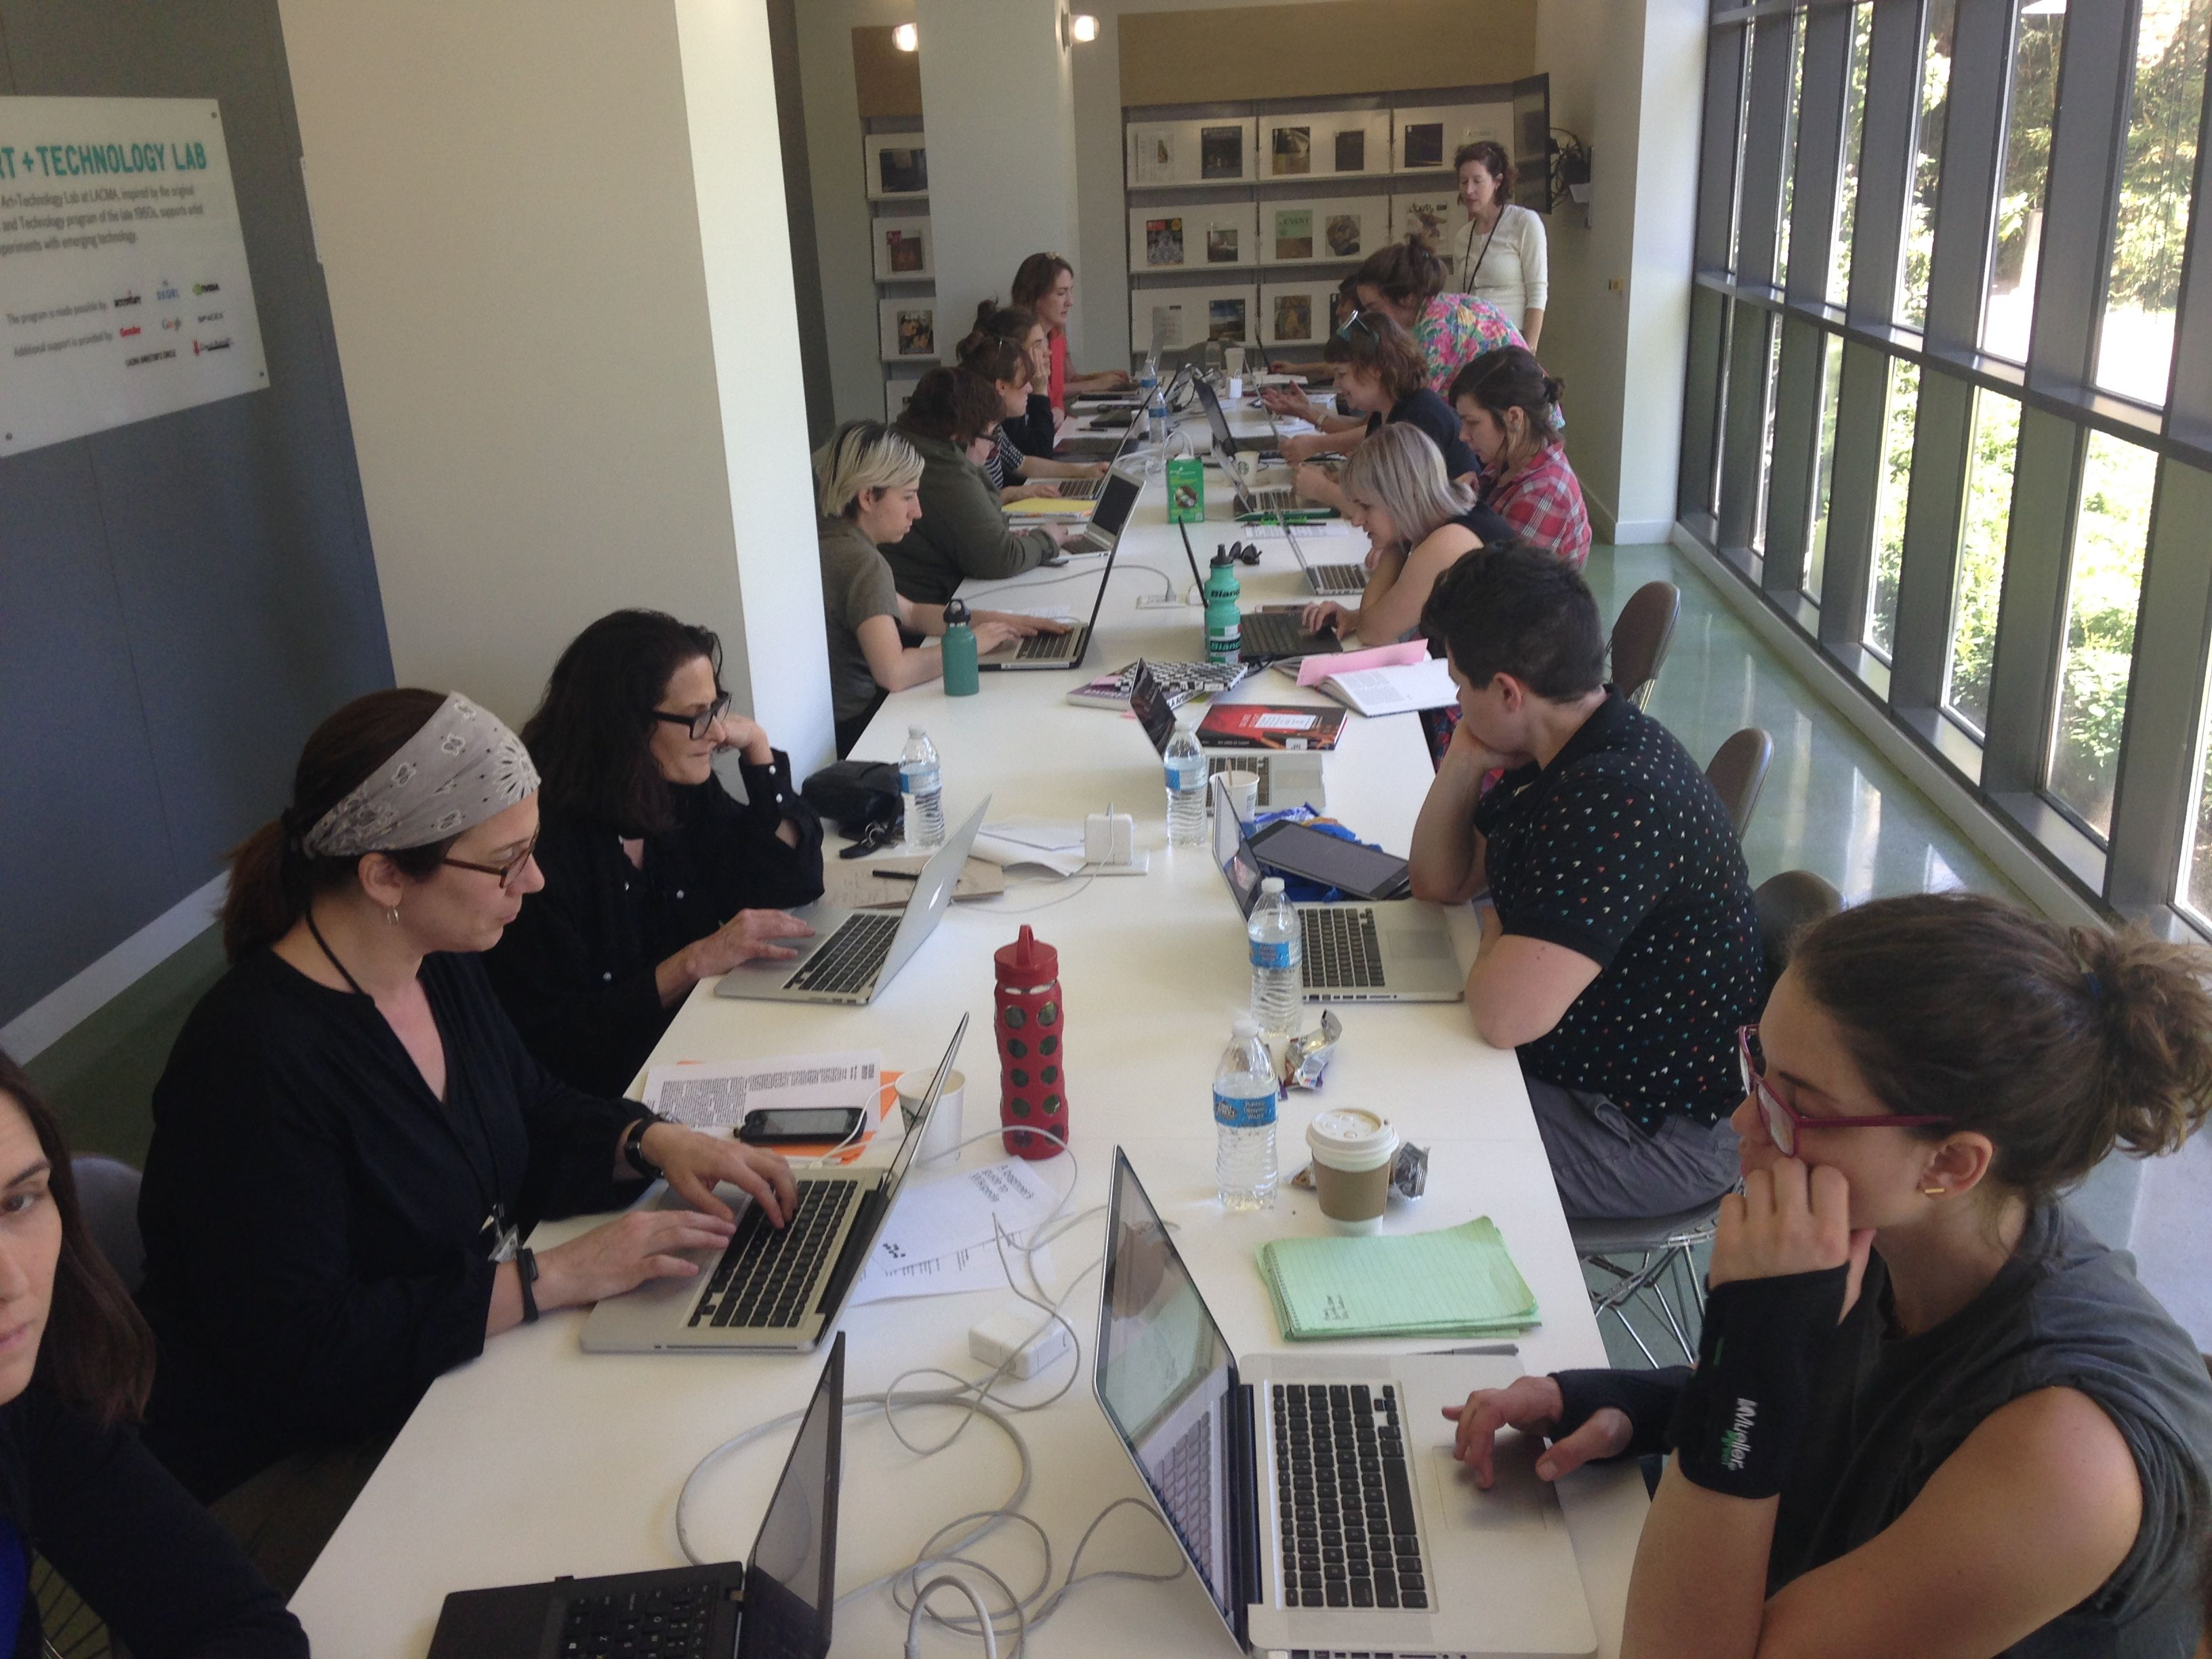 Volunteers editing Wikipedia.